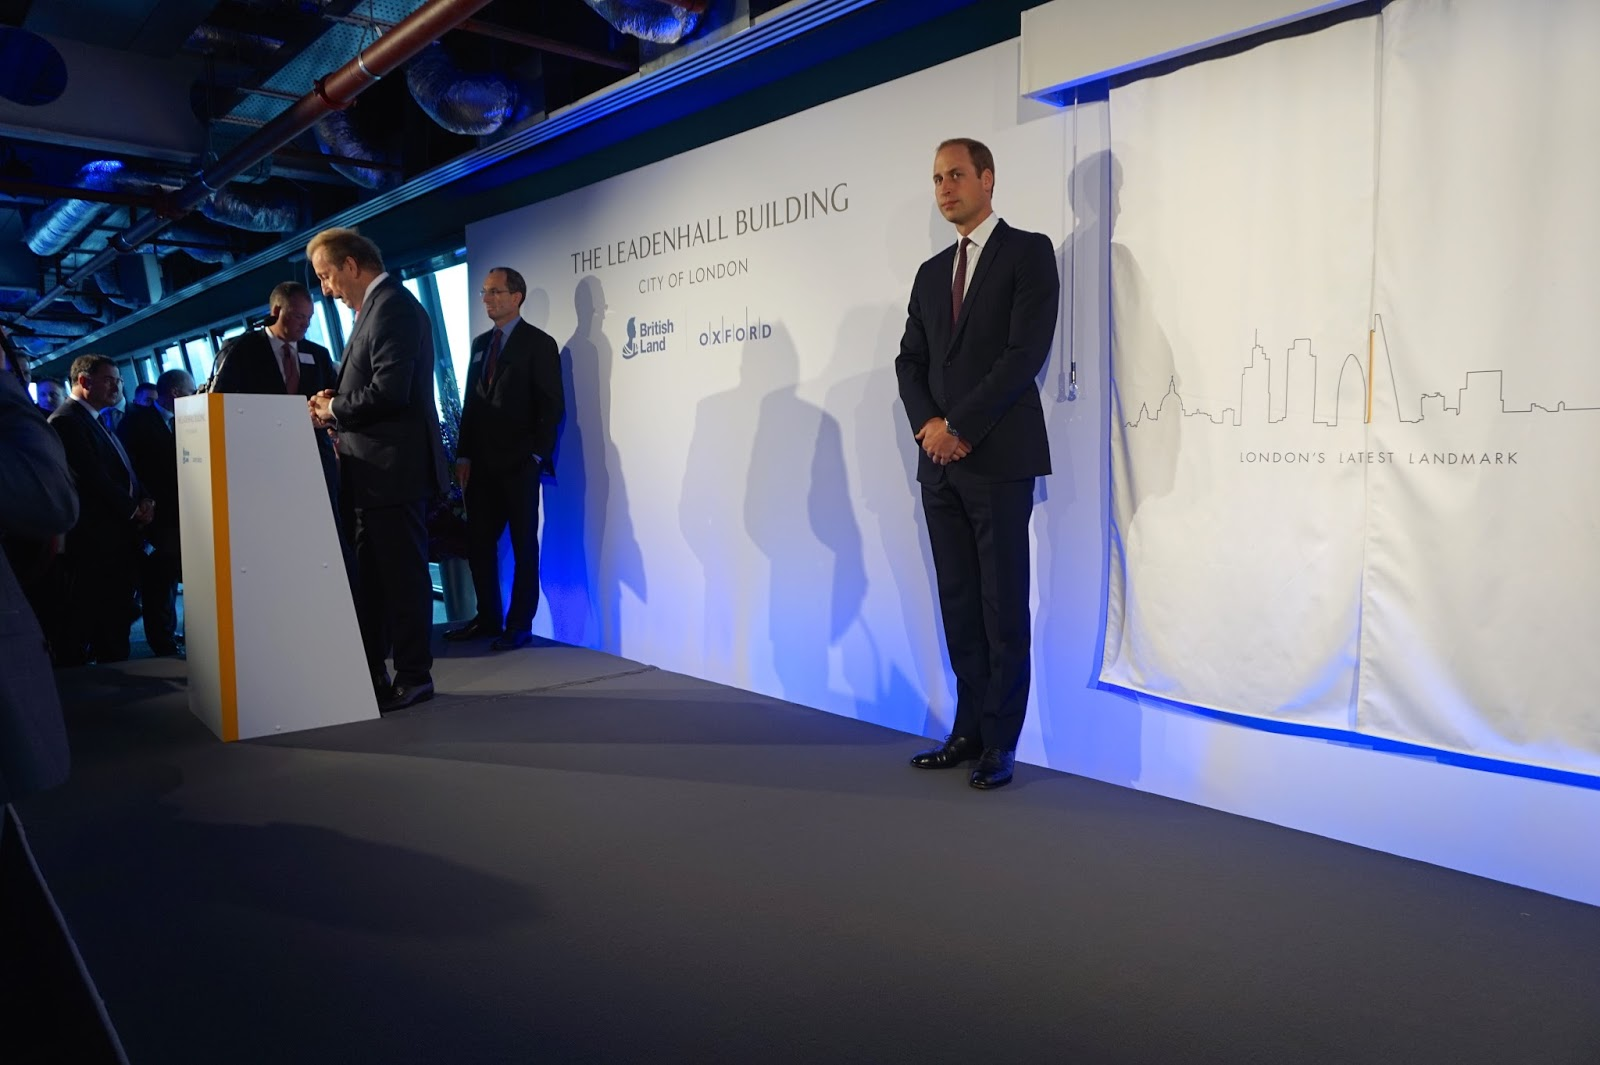 Prince William Prince Harry Officially open cheesegrater building london